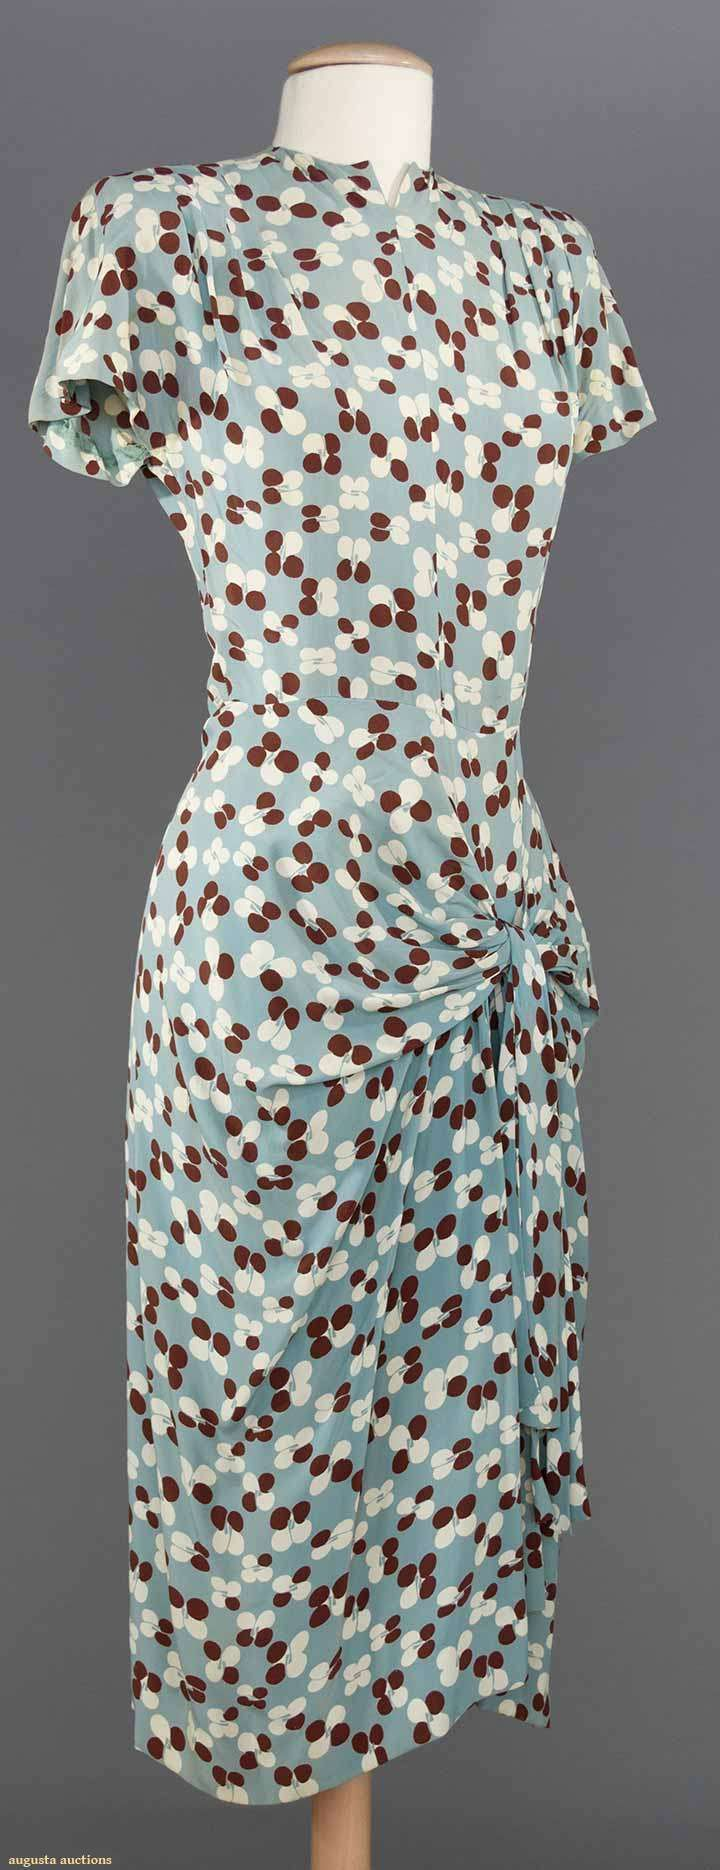 1940's silk printed day dress blue grey w/ white & chocolate petals, sarong skirt